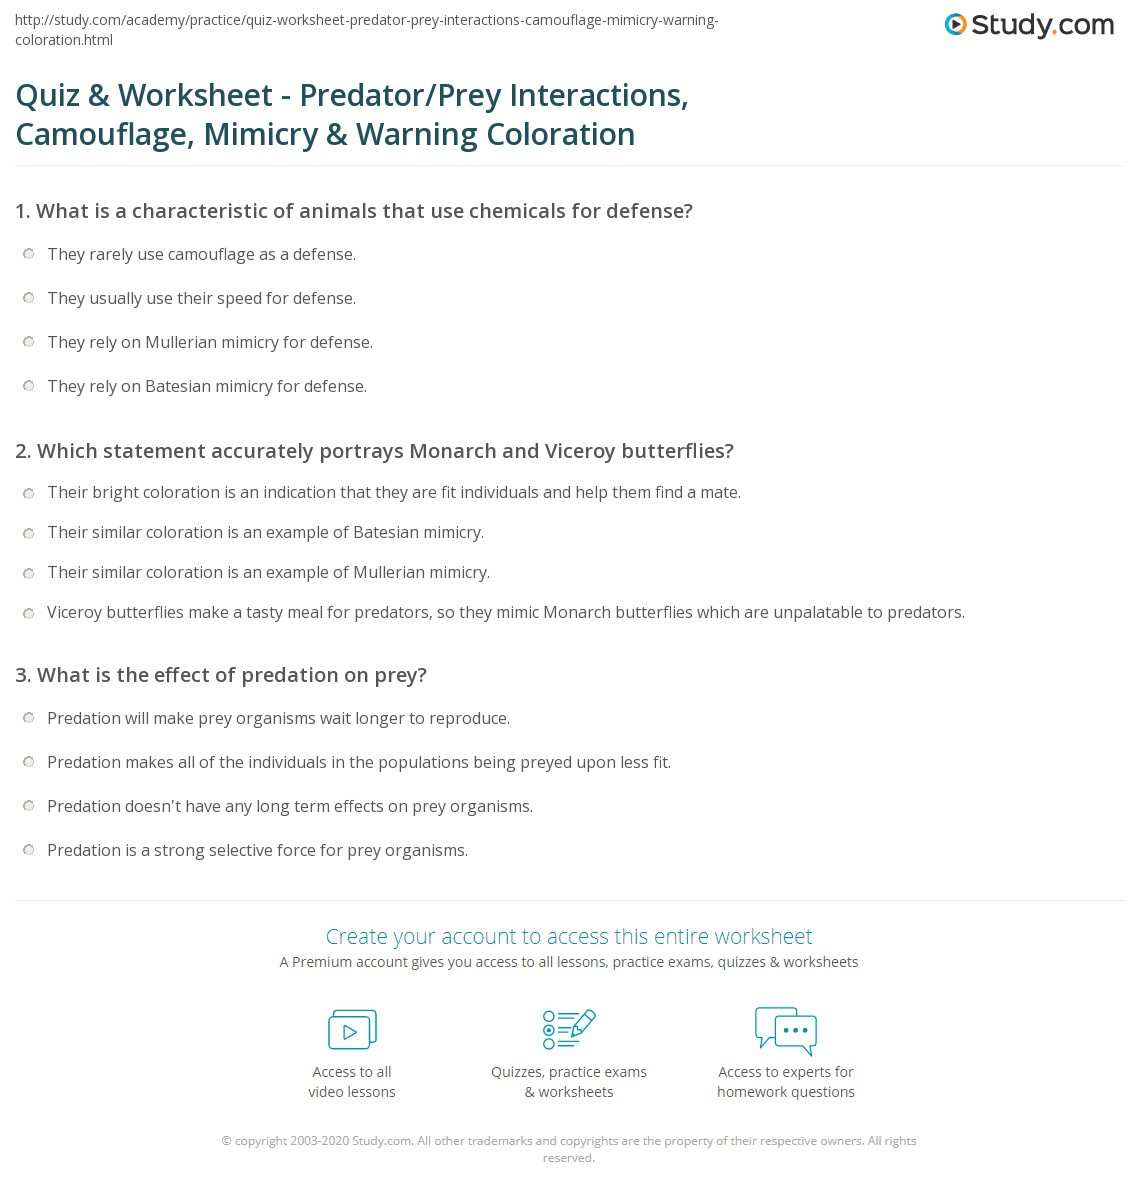 Predator Prey Worksheet High School Quiz & Worksheet Predator Prey Interactions Camouflage